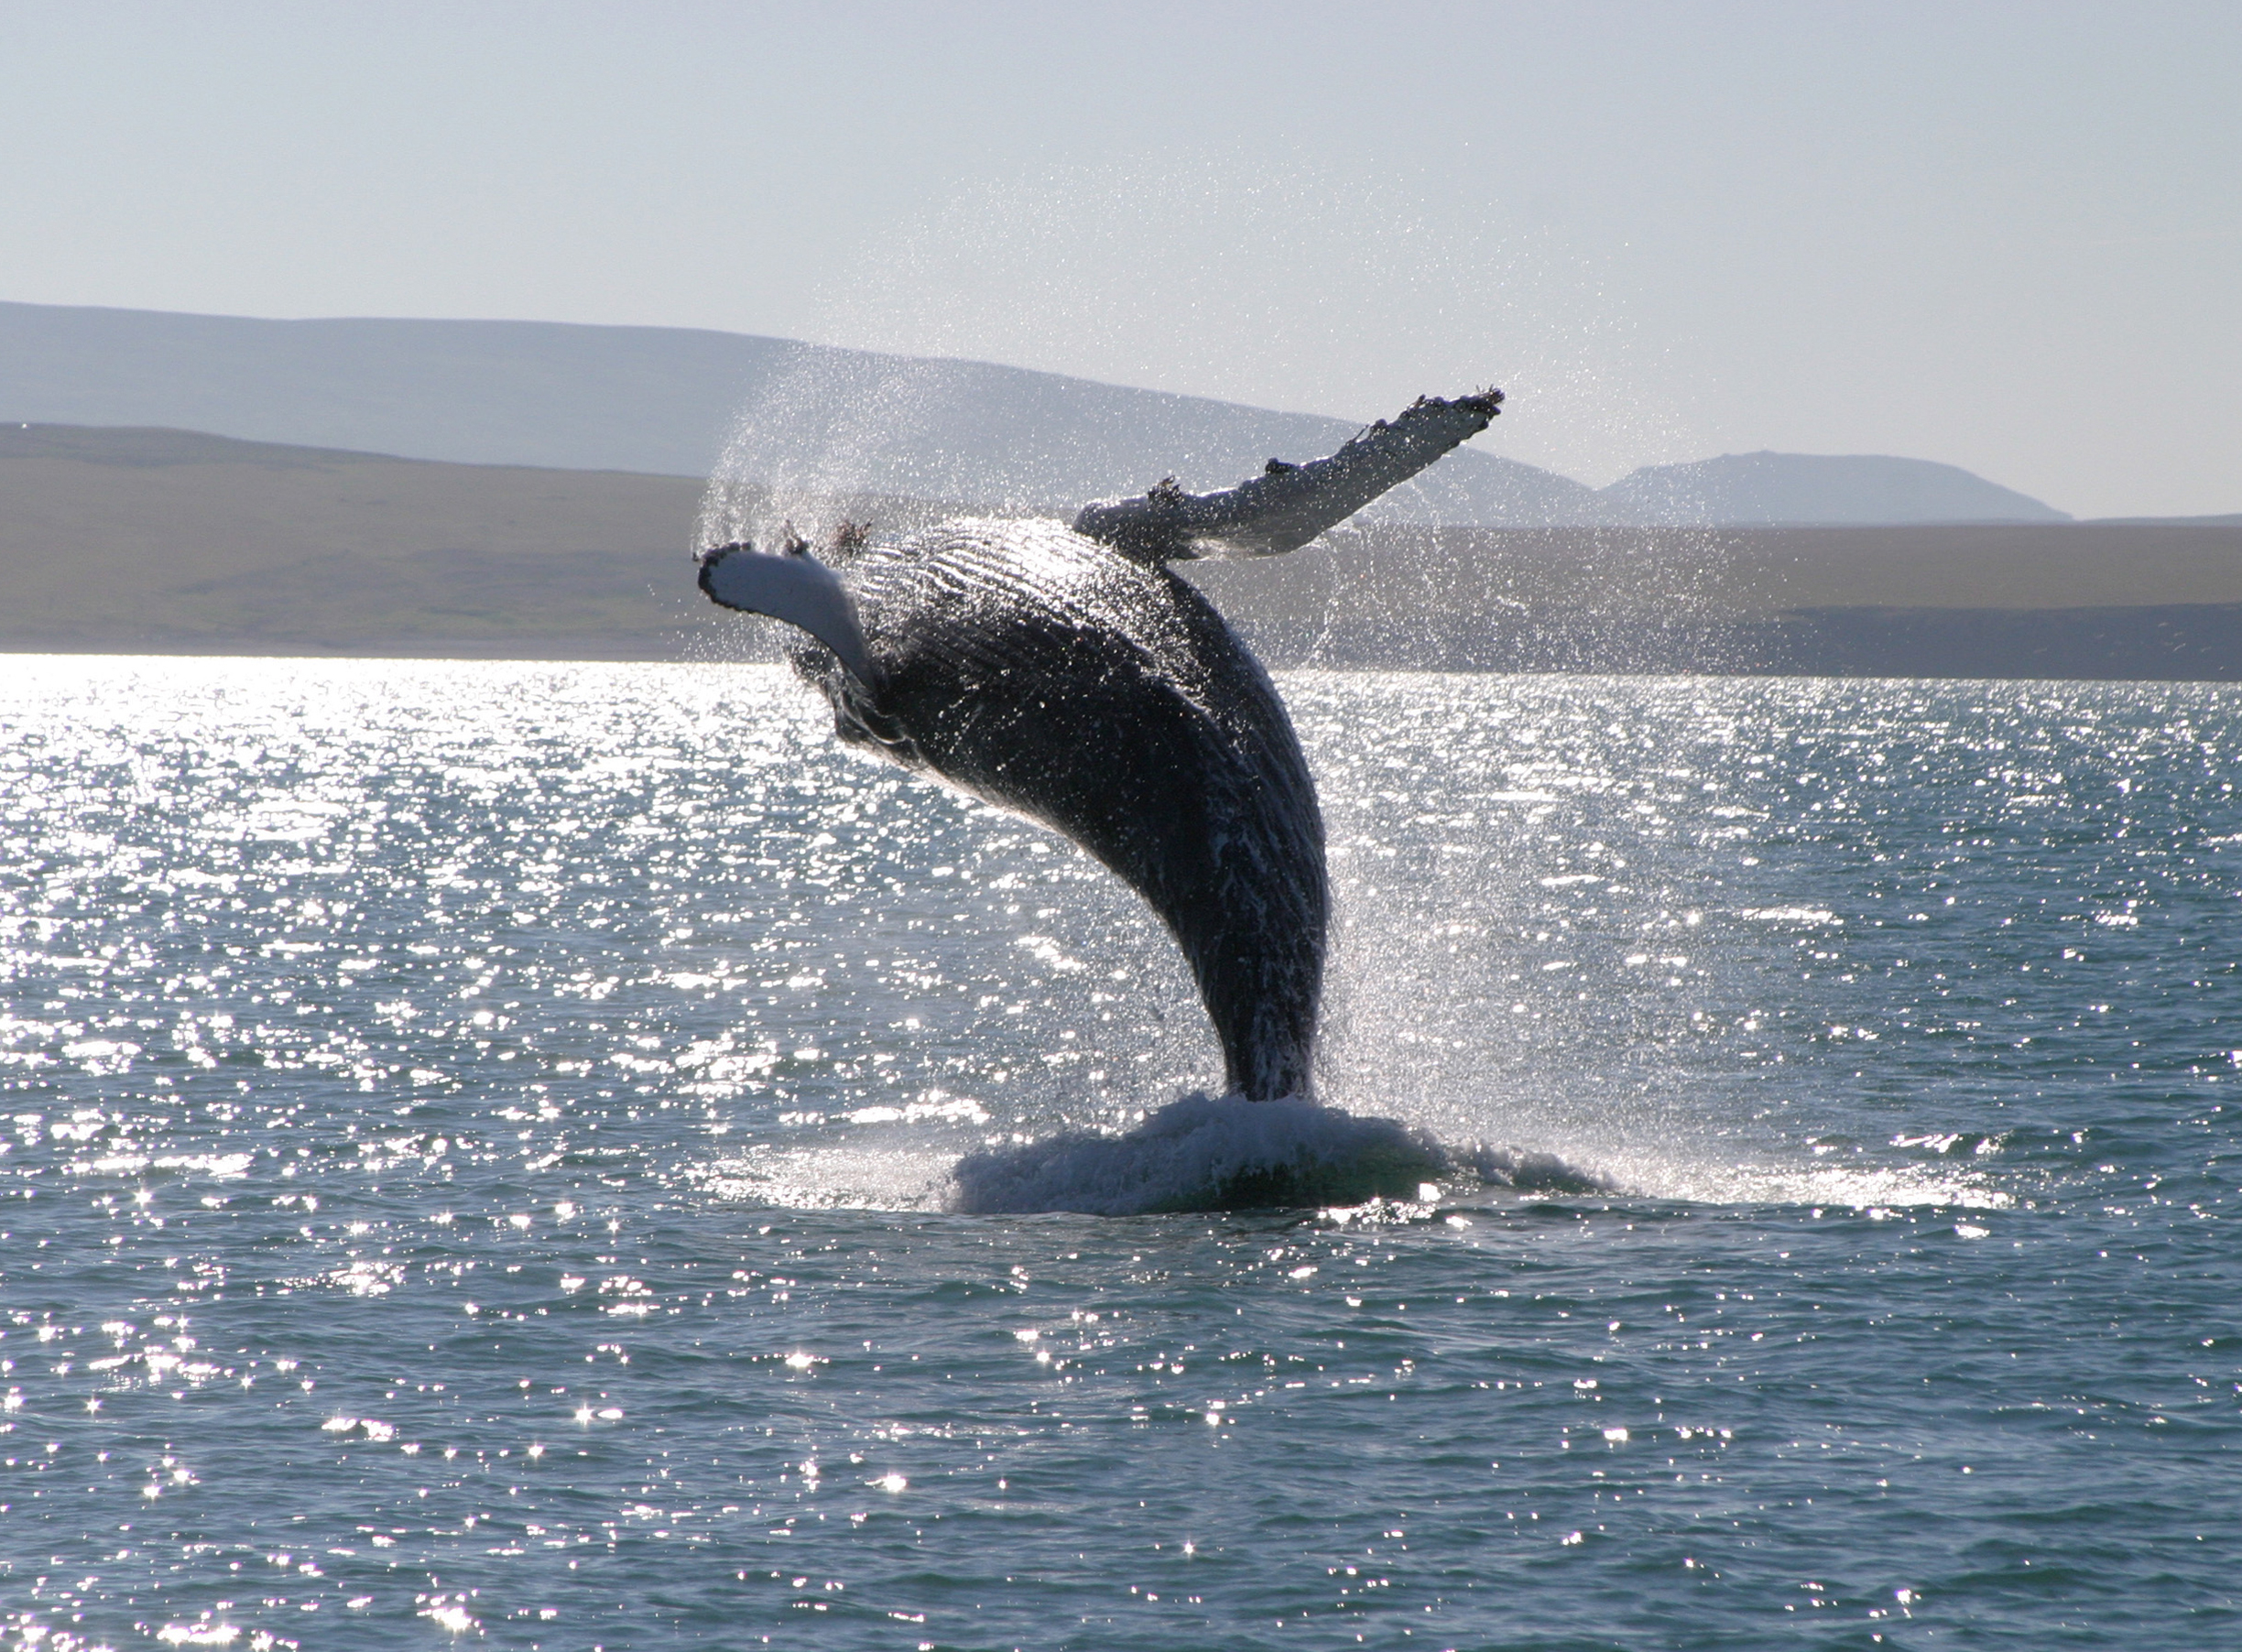 Island, Walsafari, Wal springt, Tier, Natur, Whale watching